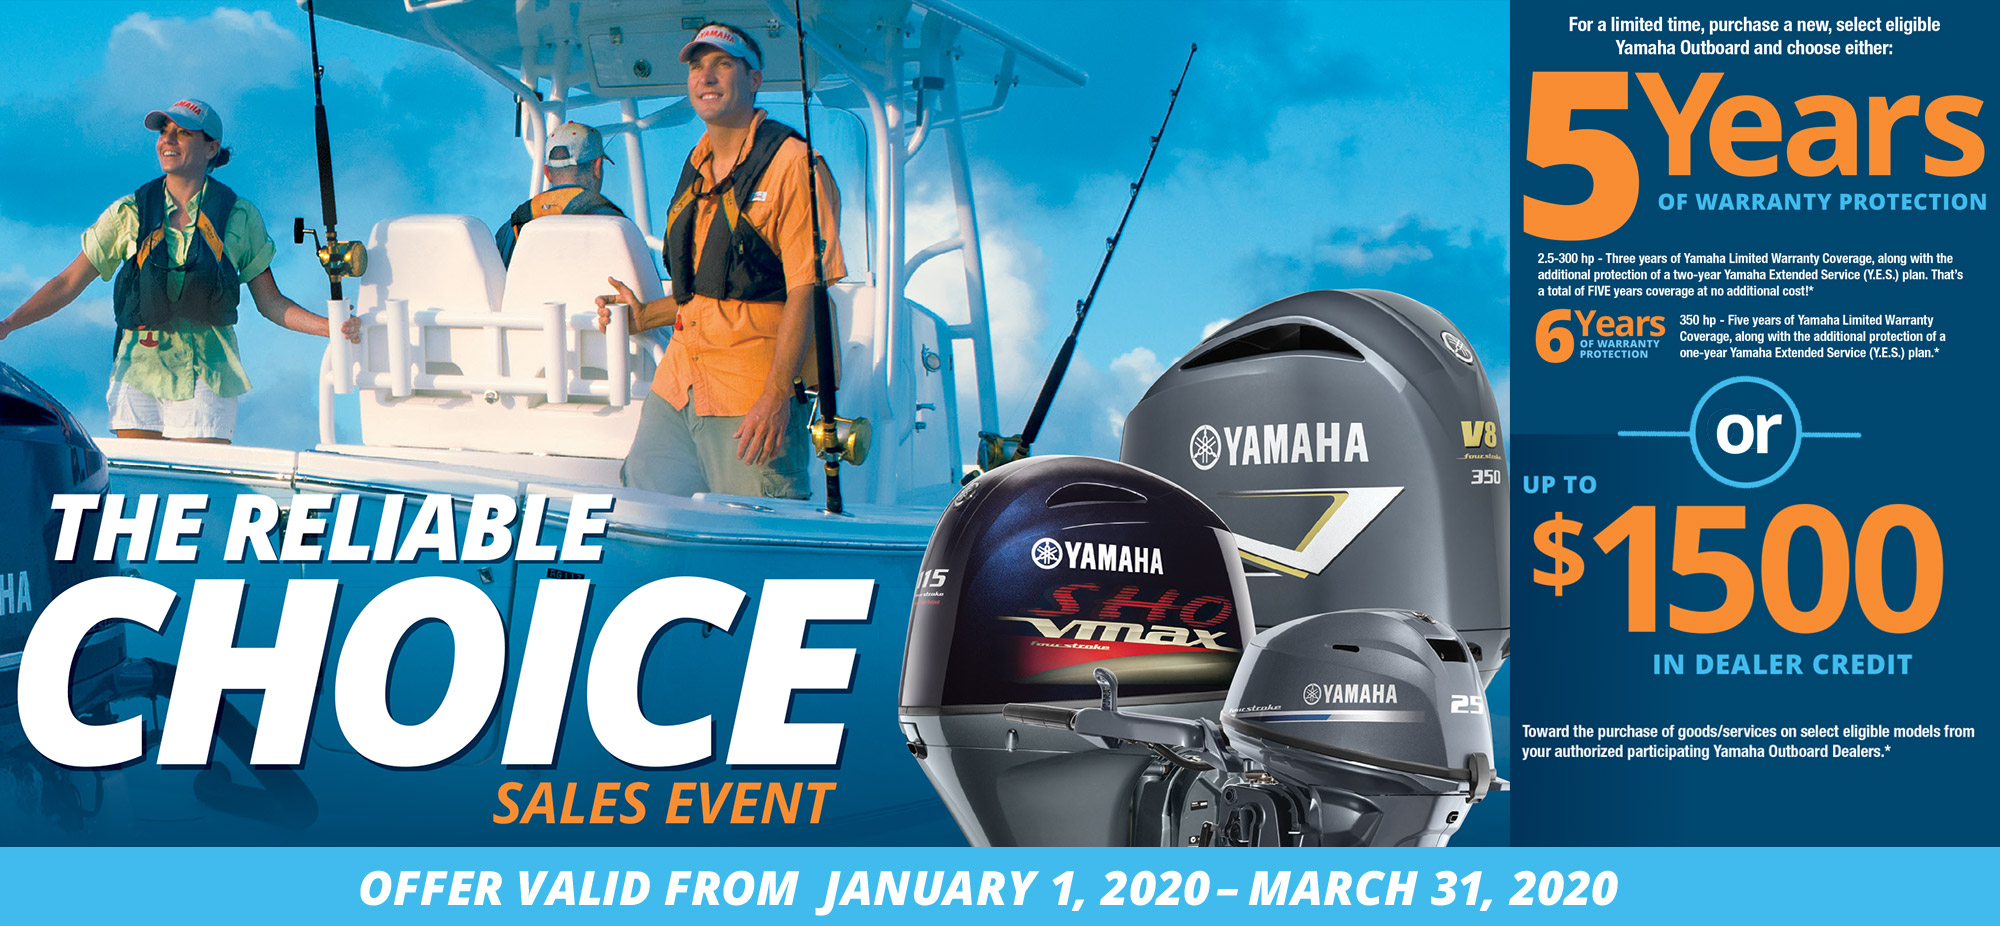 Yamaha 2020 Reliable Choice Sales Event